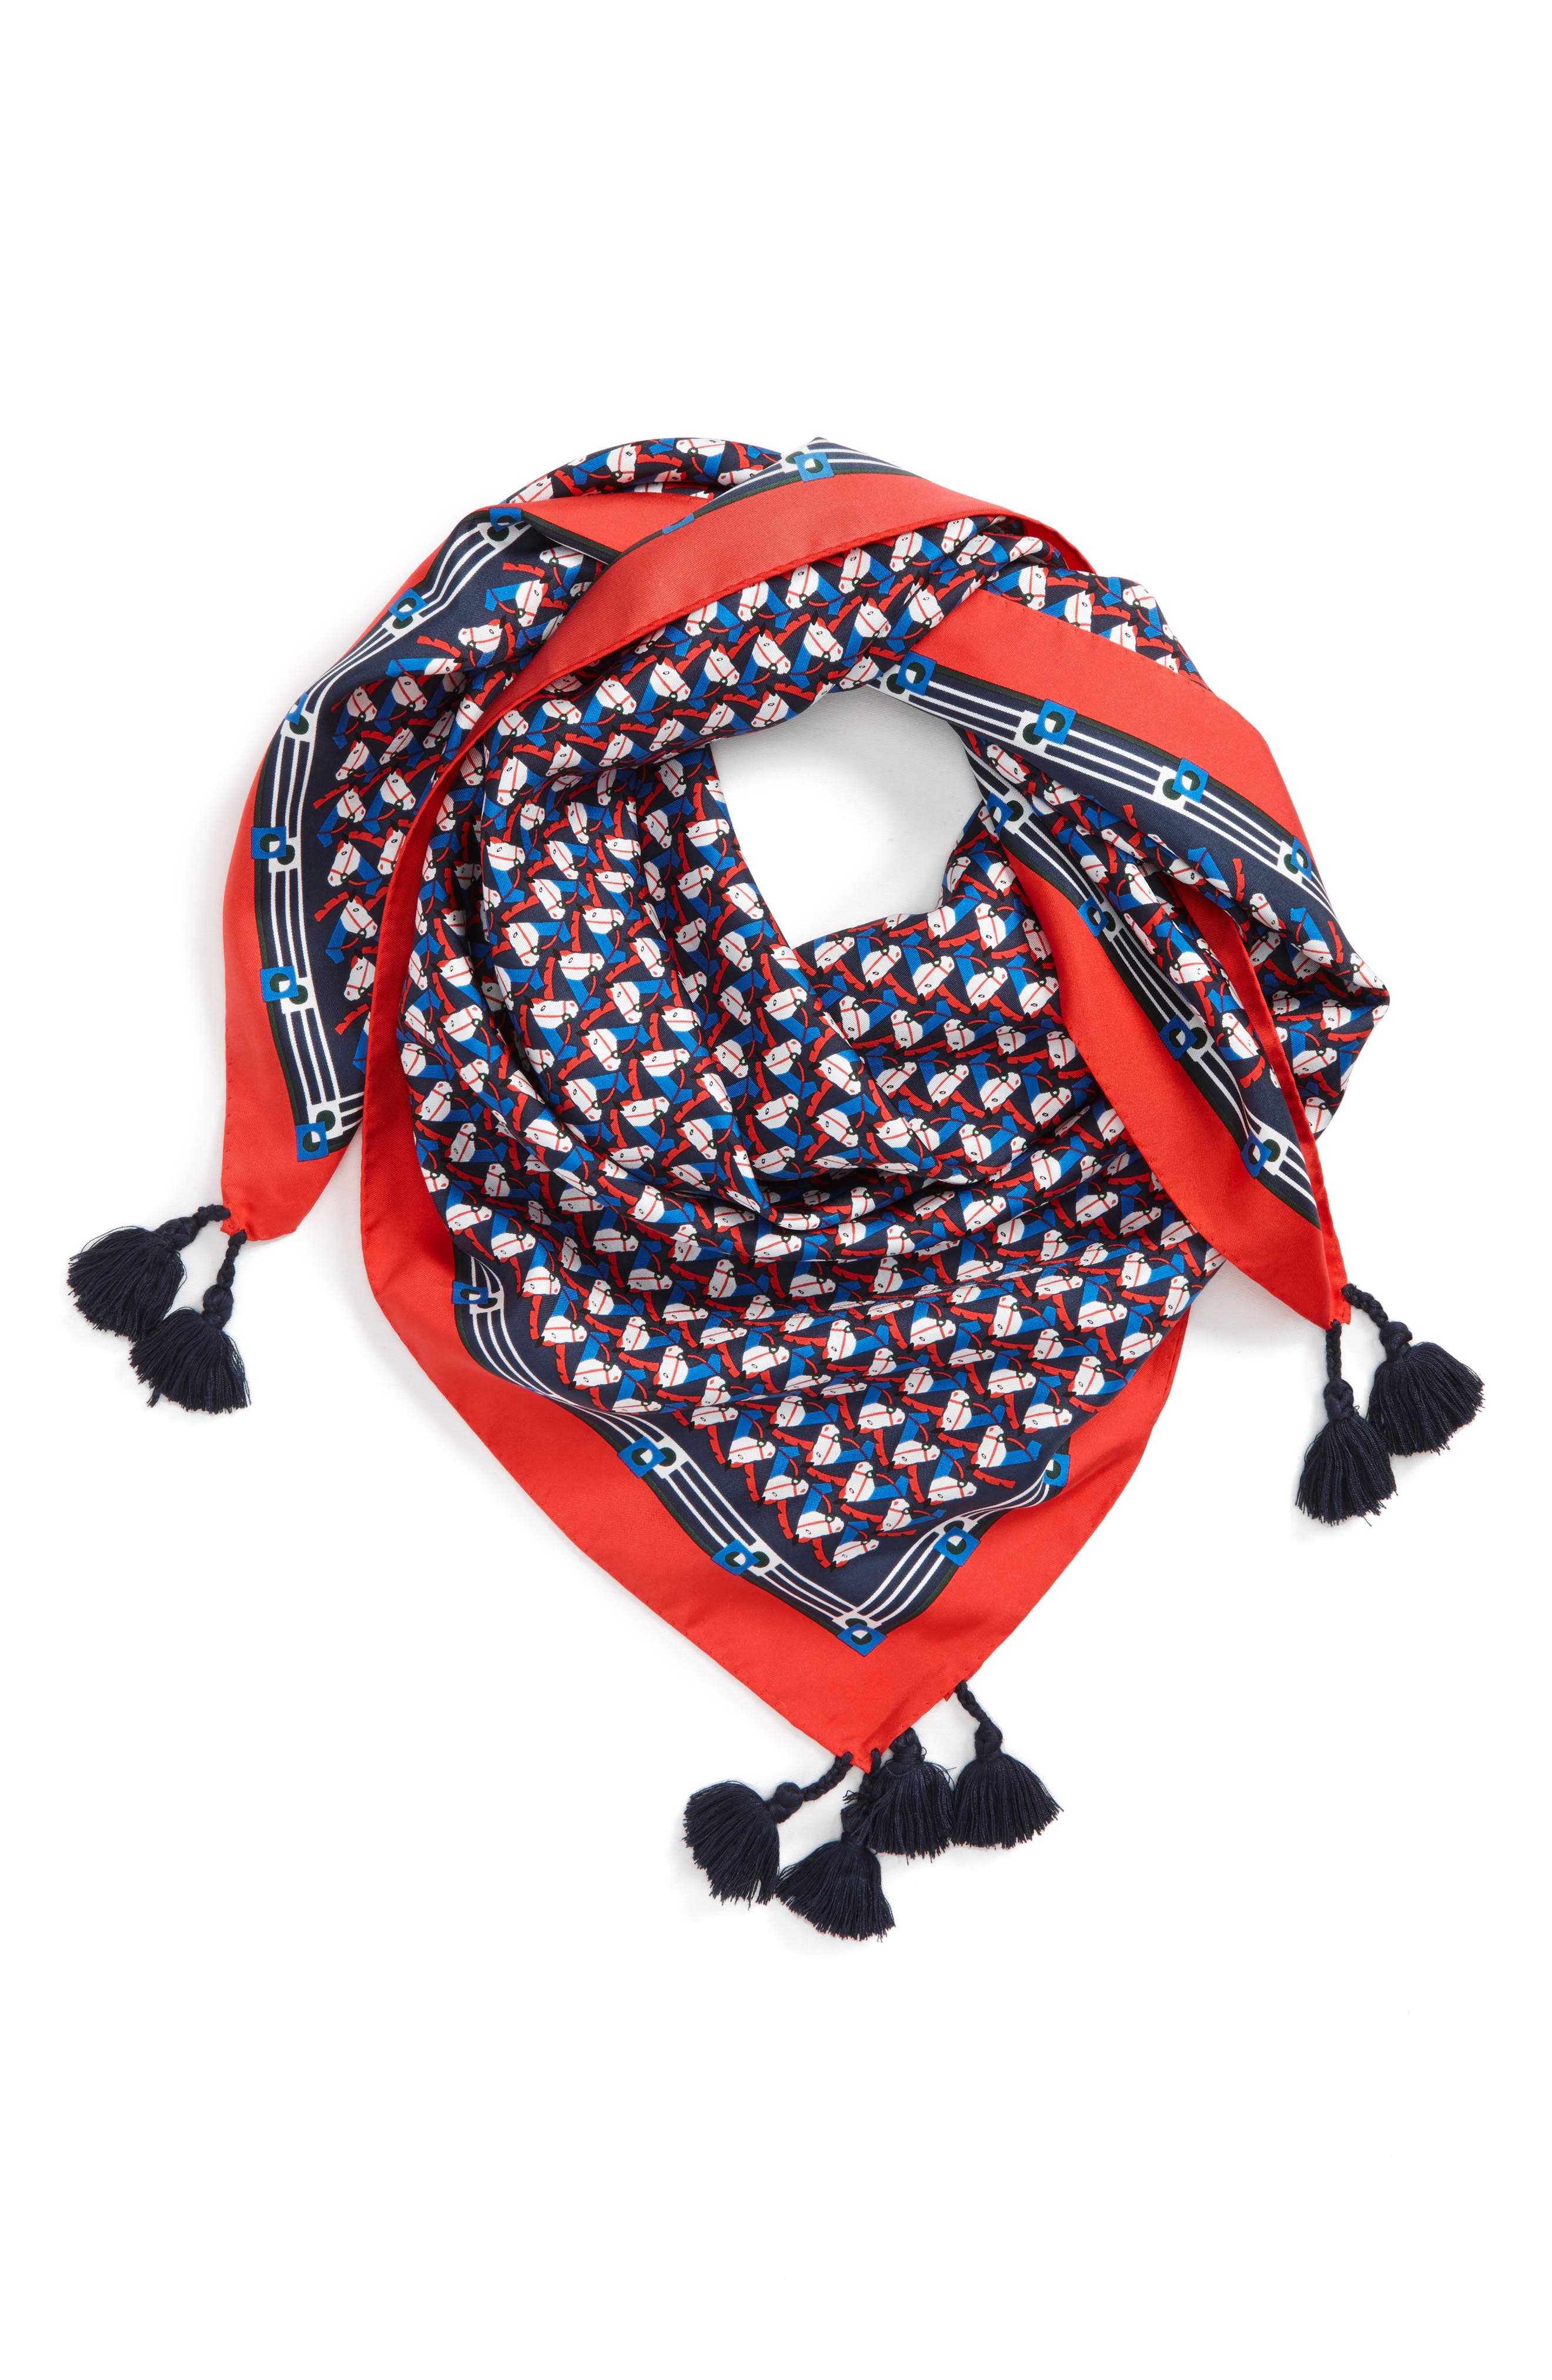 Tory Burch Stallion Silk Square Scarf with Tassels